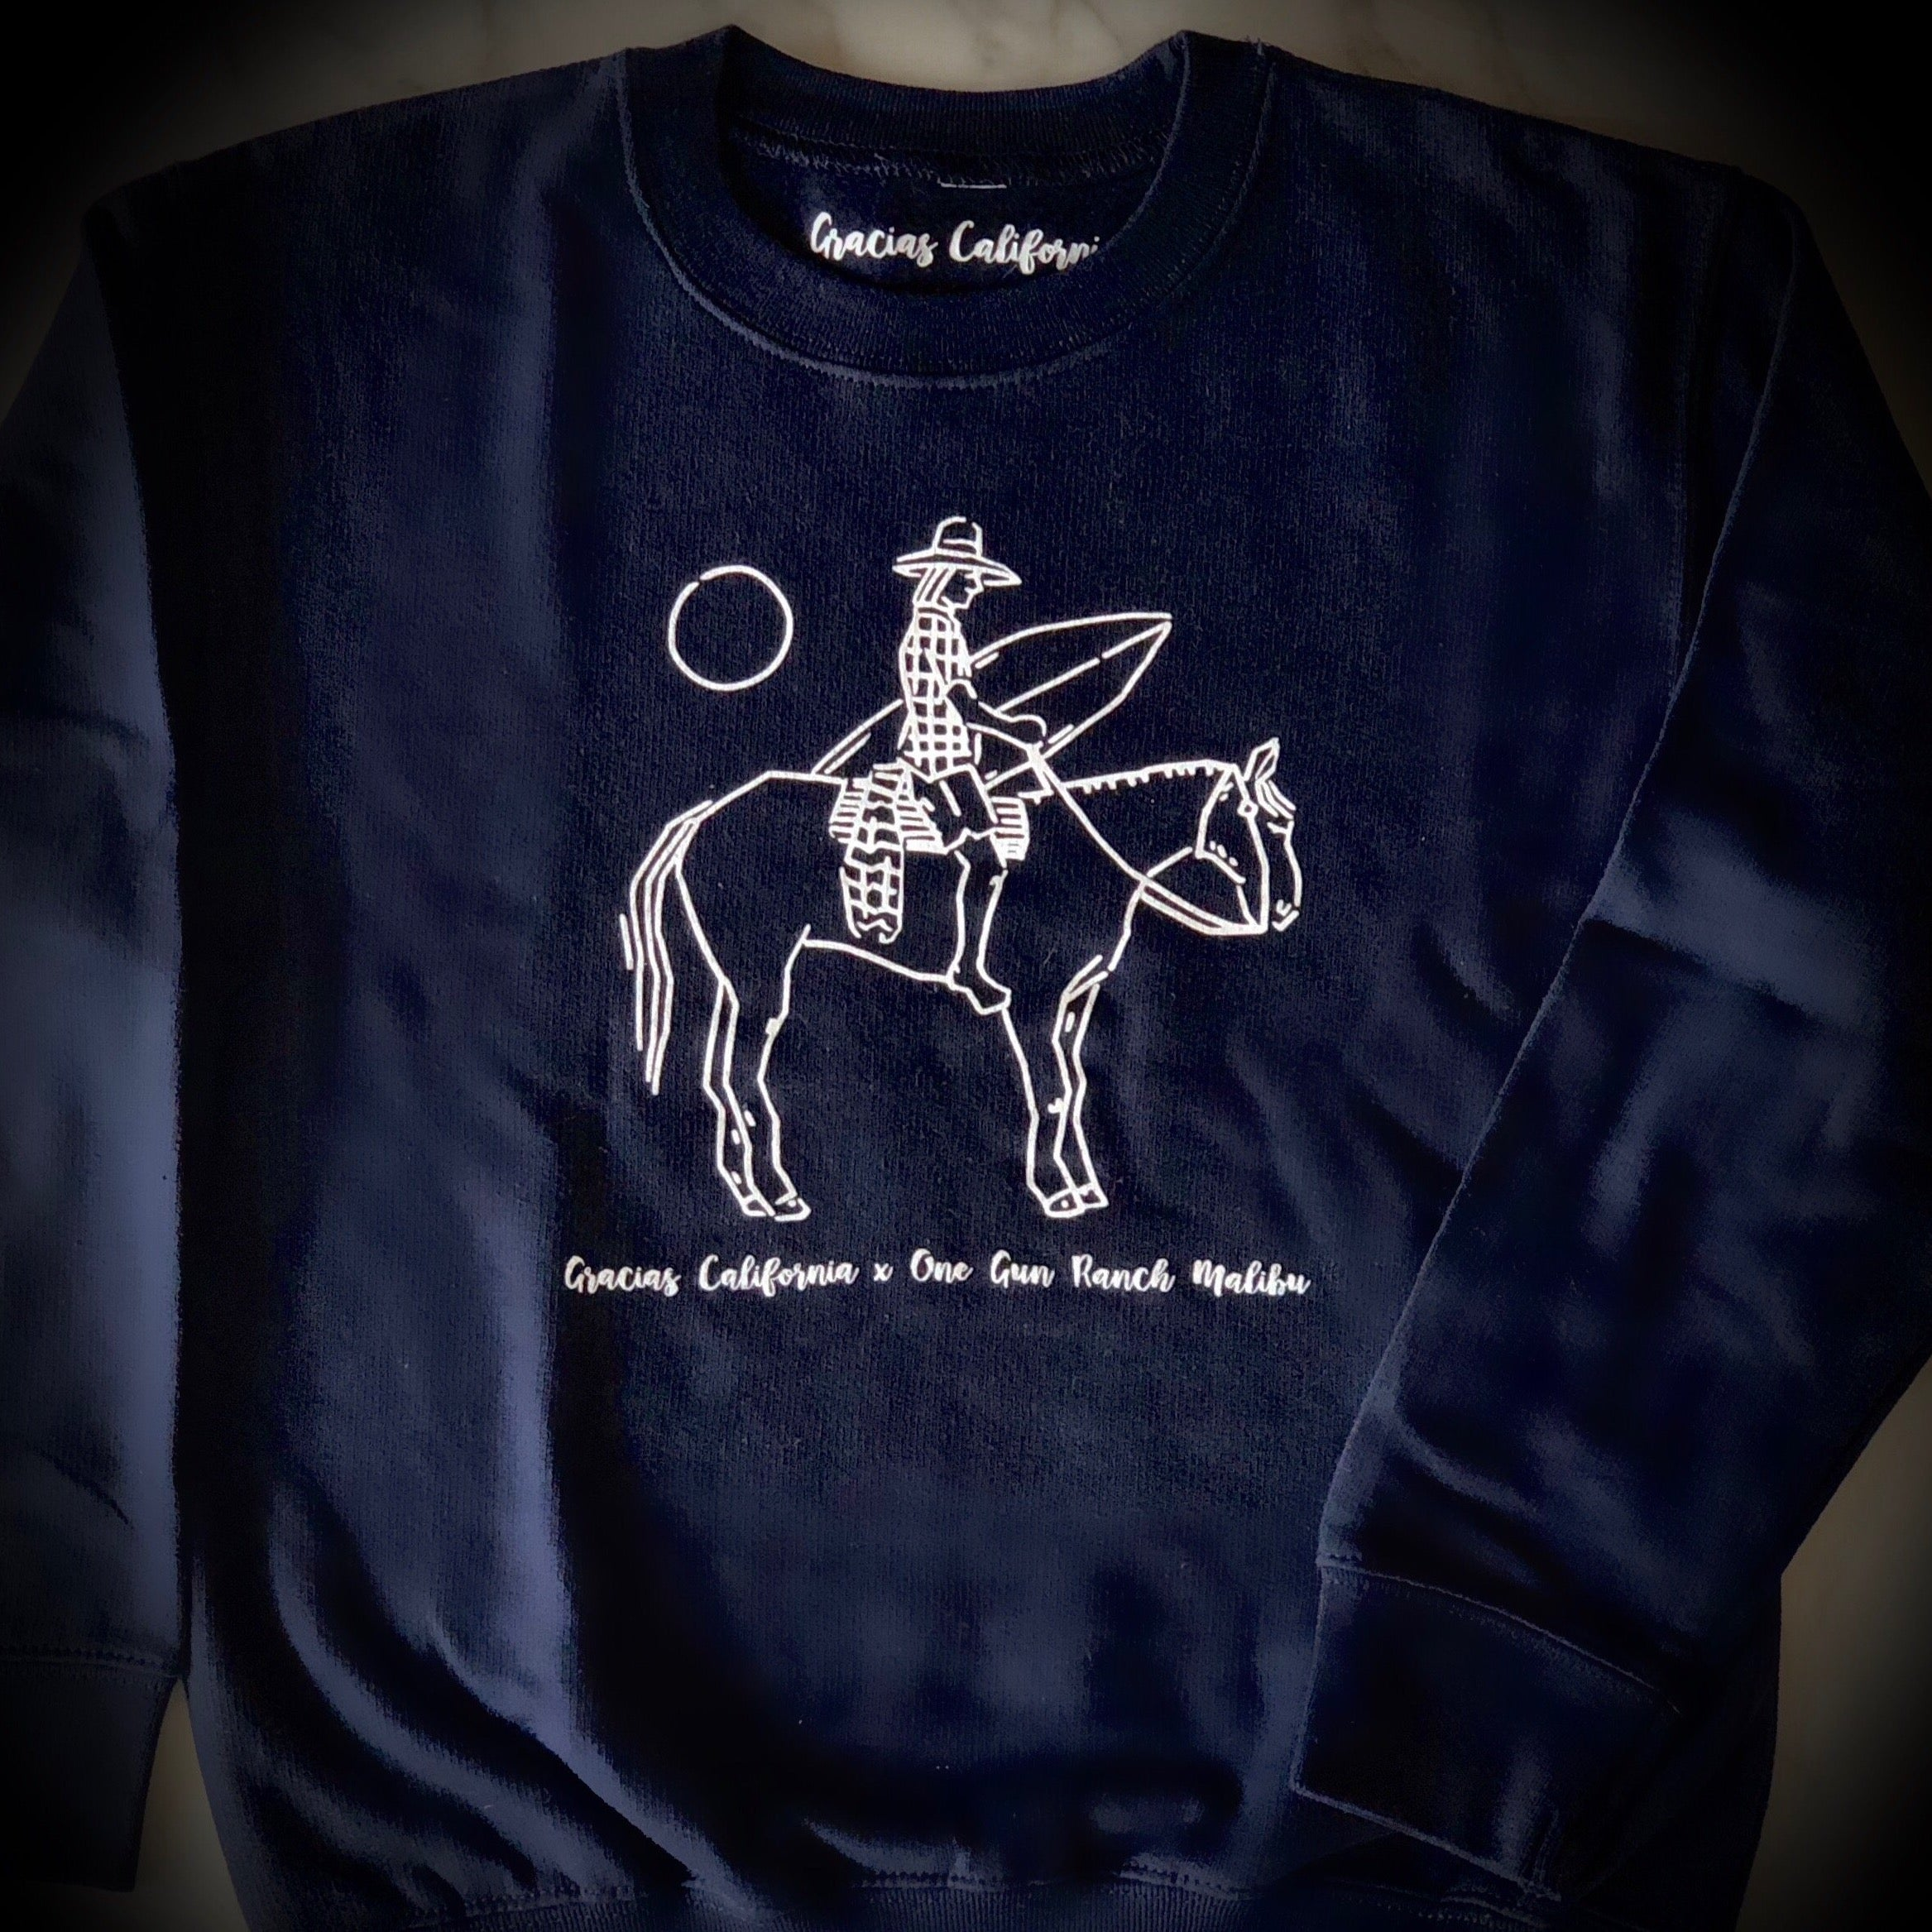 GC kids navy sweatshirt with a white outline of a woman riding a horse and holding a surfboard. At the bottom the text says gracias california X one gun ranch malibu.